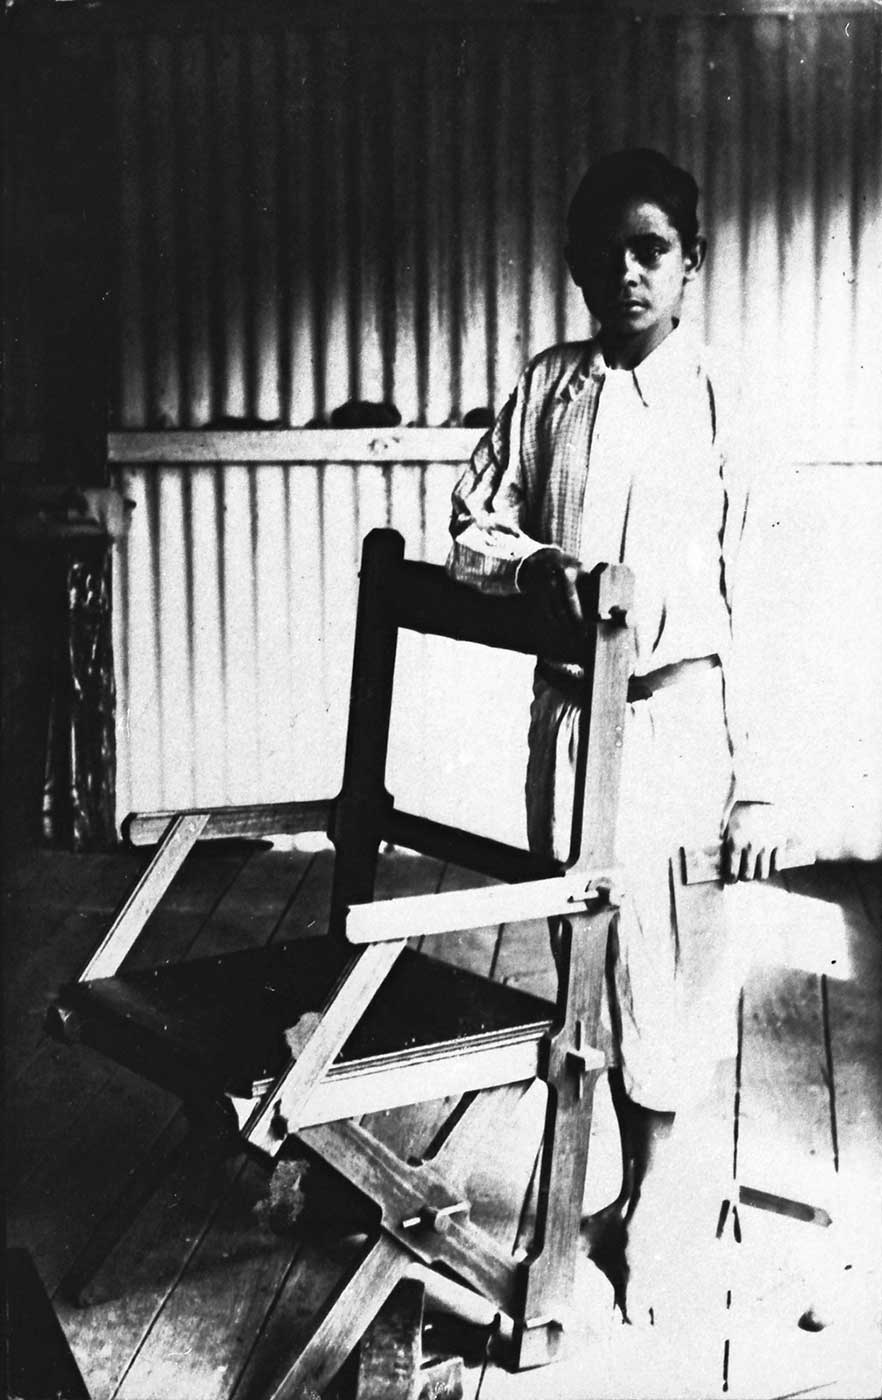 Black and white photograph of a boy standing behind a wooden chair. The boy is dressed in a shirt and short pants and is barefoot.